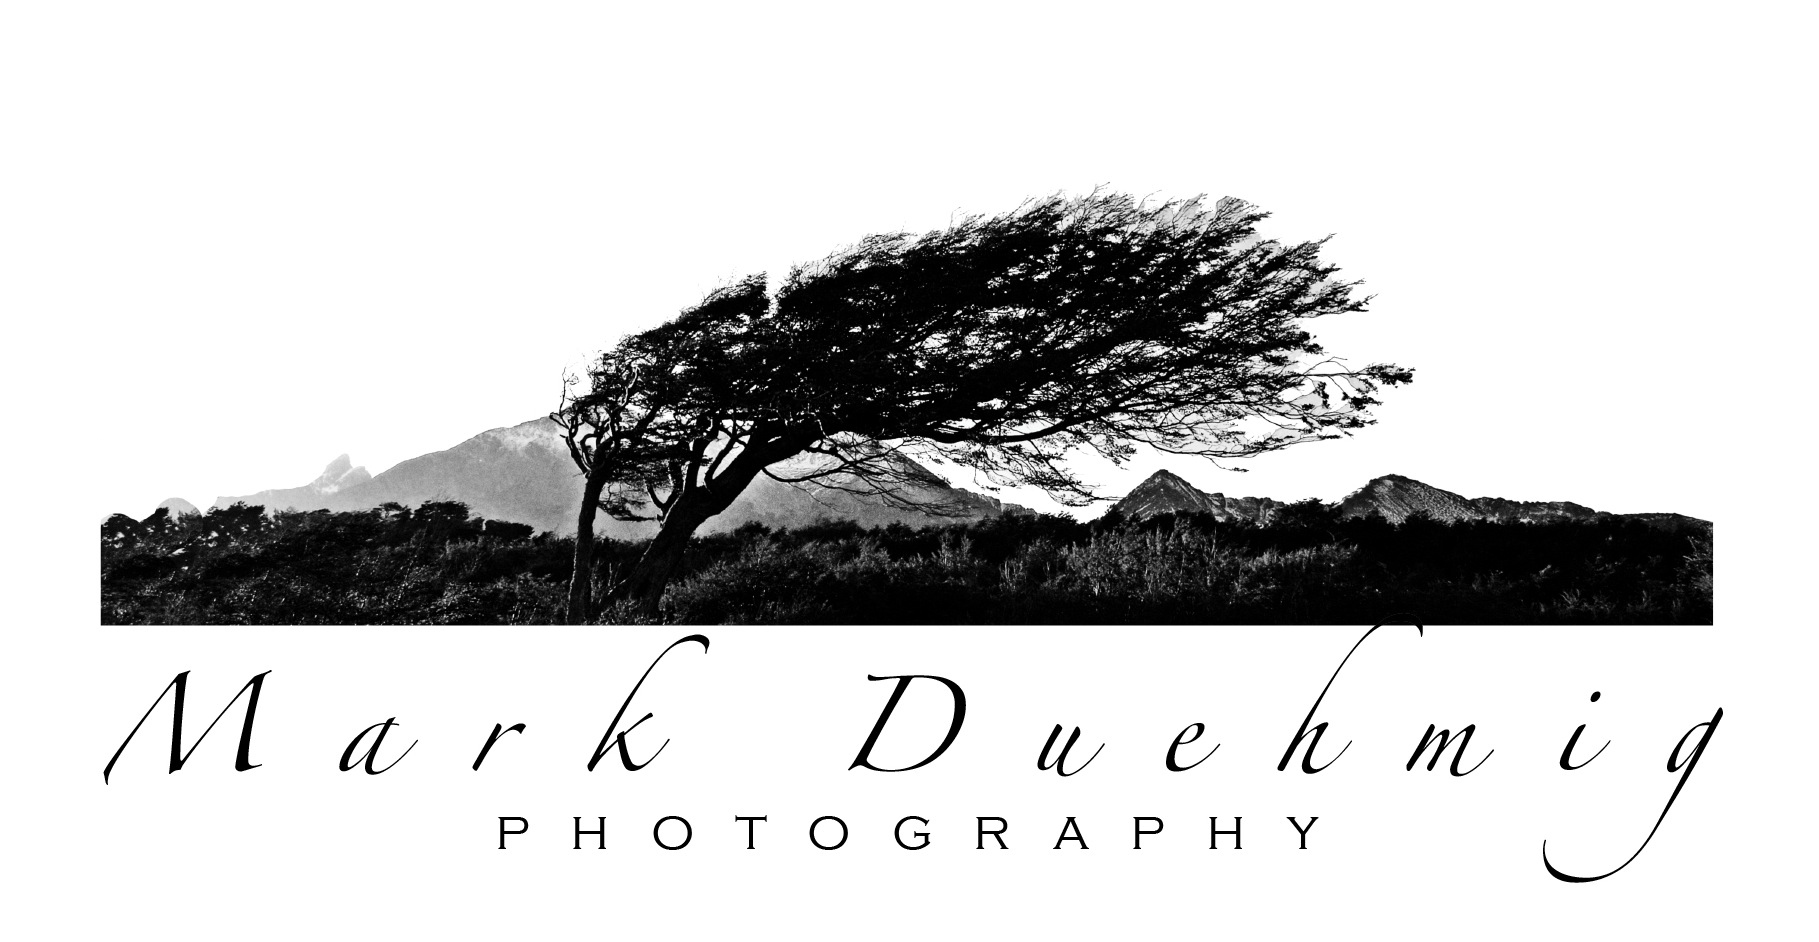 Mark Duehmig - Artist Website